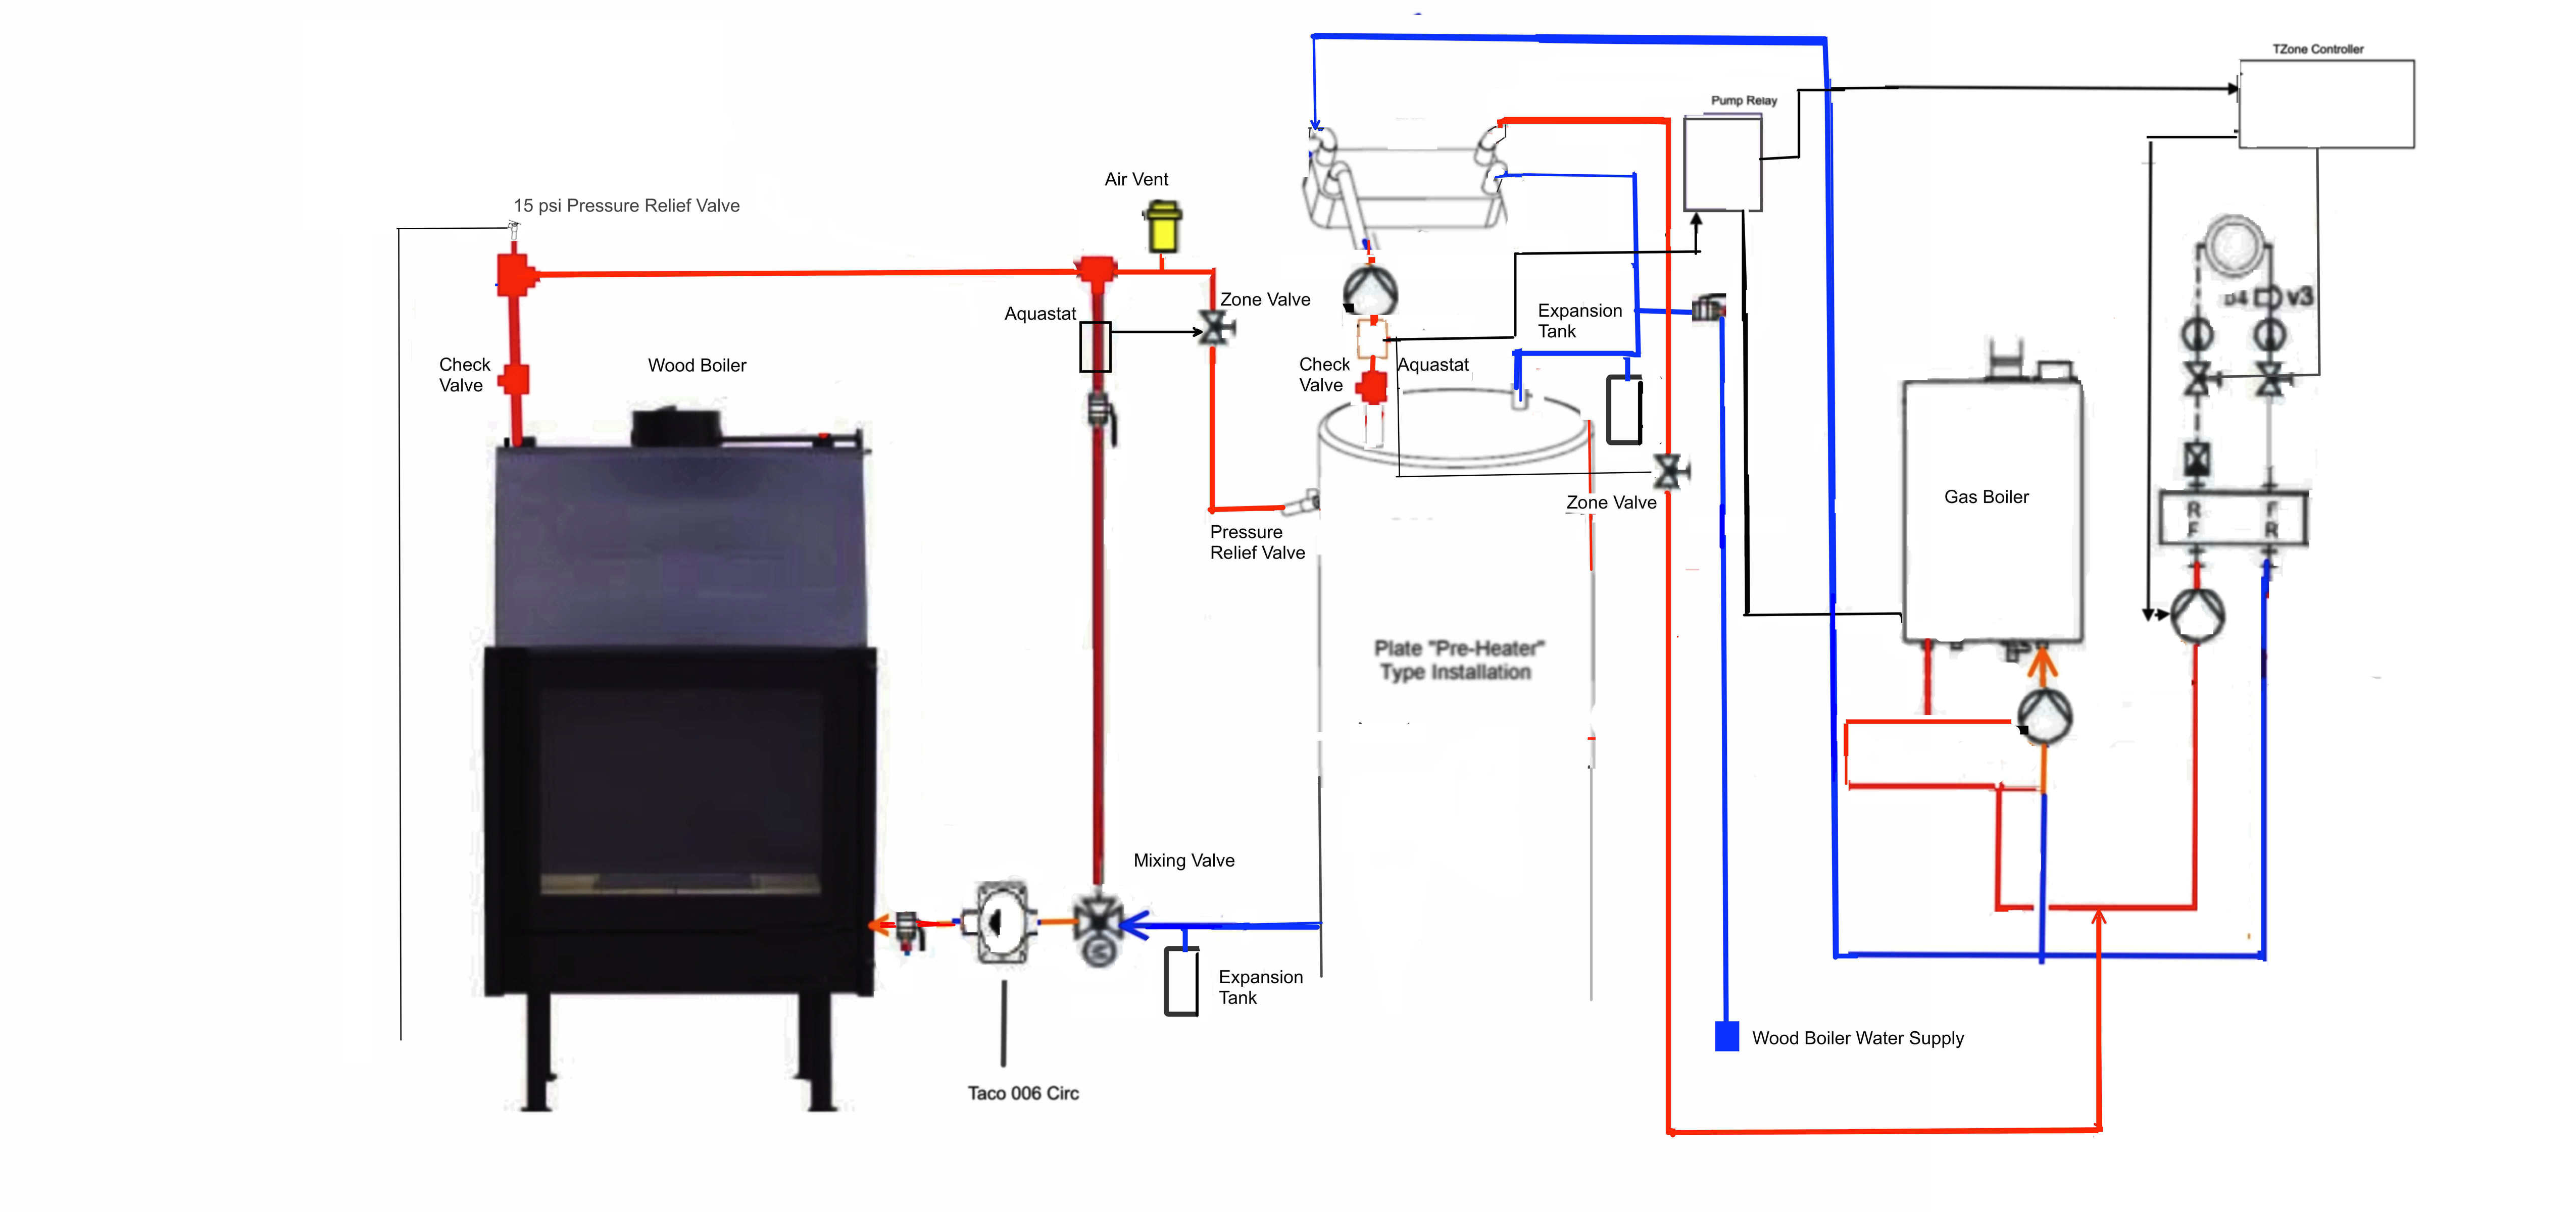 Wiring Plan for Fireplace Boiler | Twinsprings Research Institute | Grundfos Boiler Wiring Diagram |  | Twinsprings Research Institute